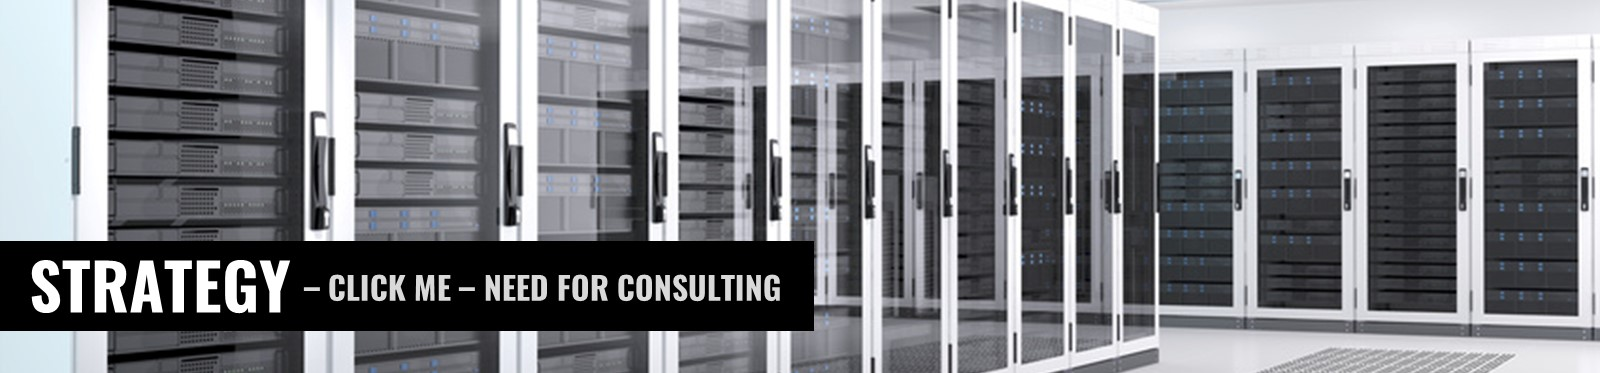 Need for Consulting